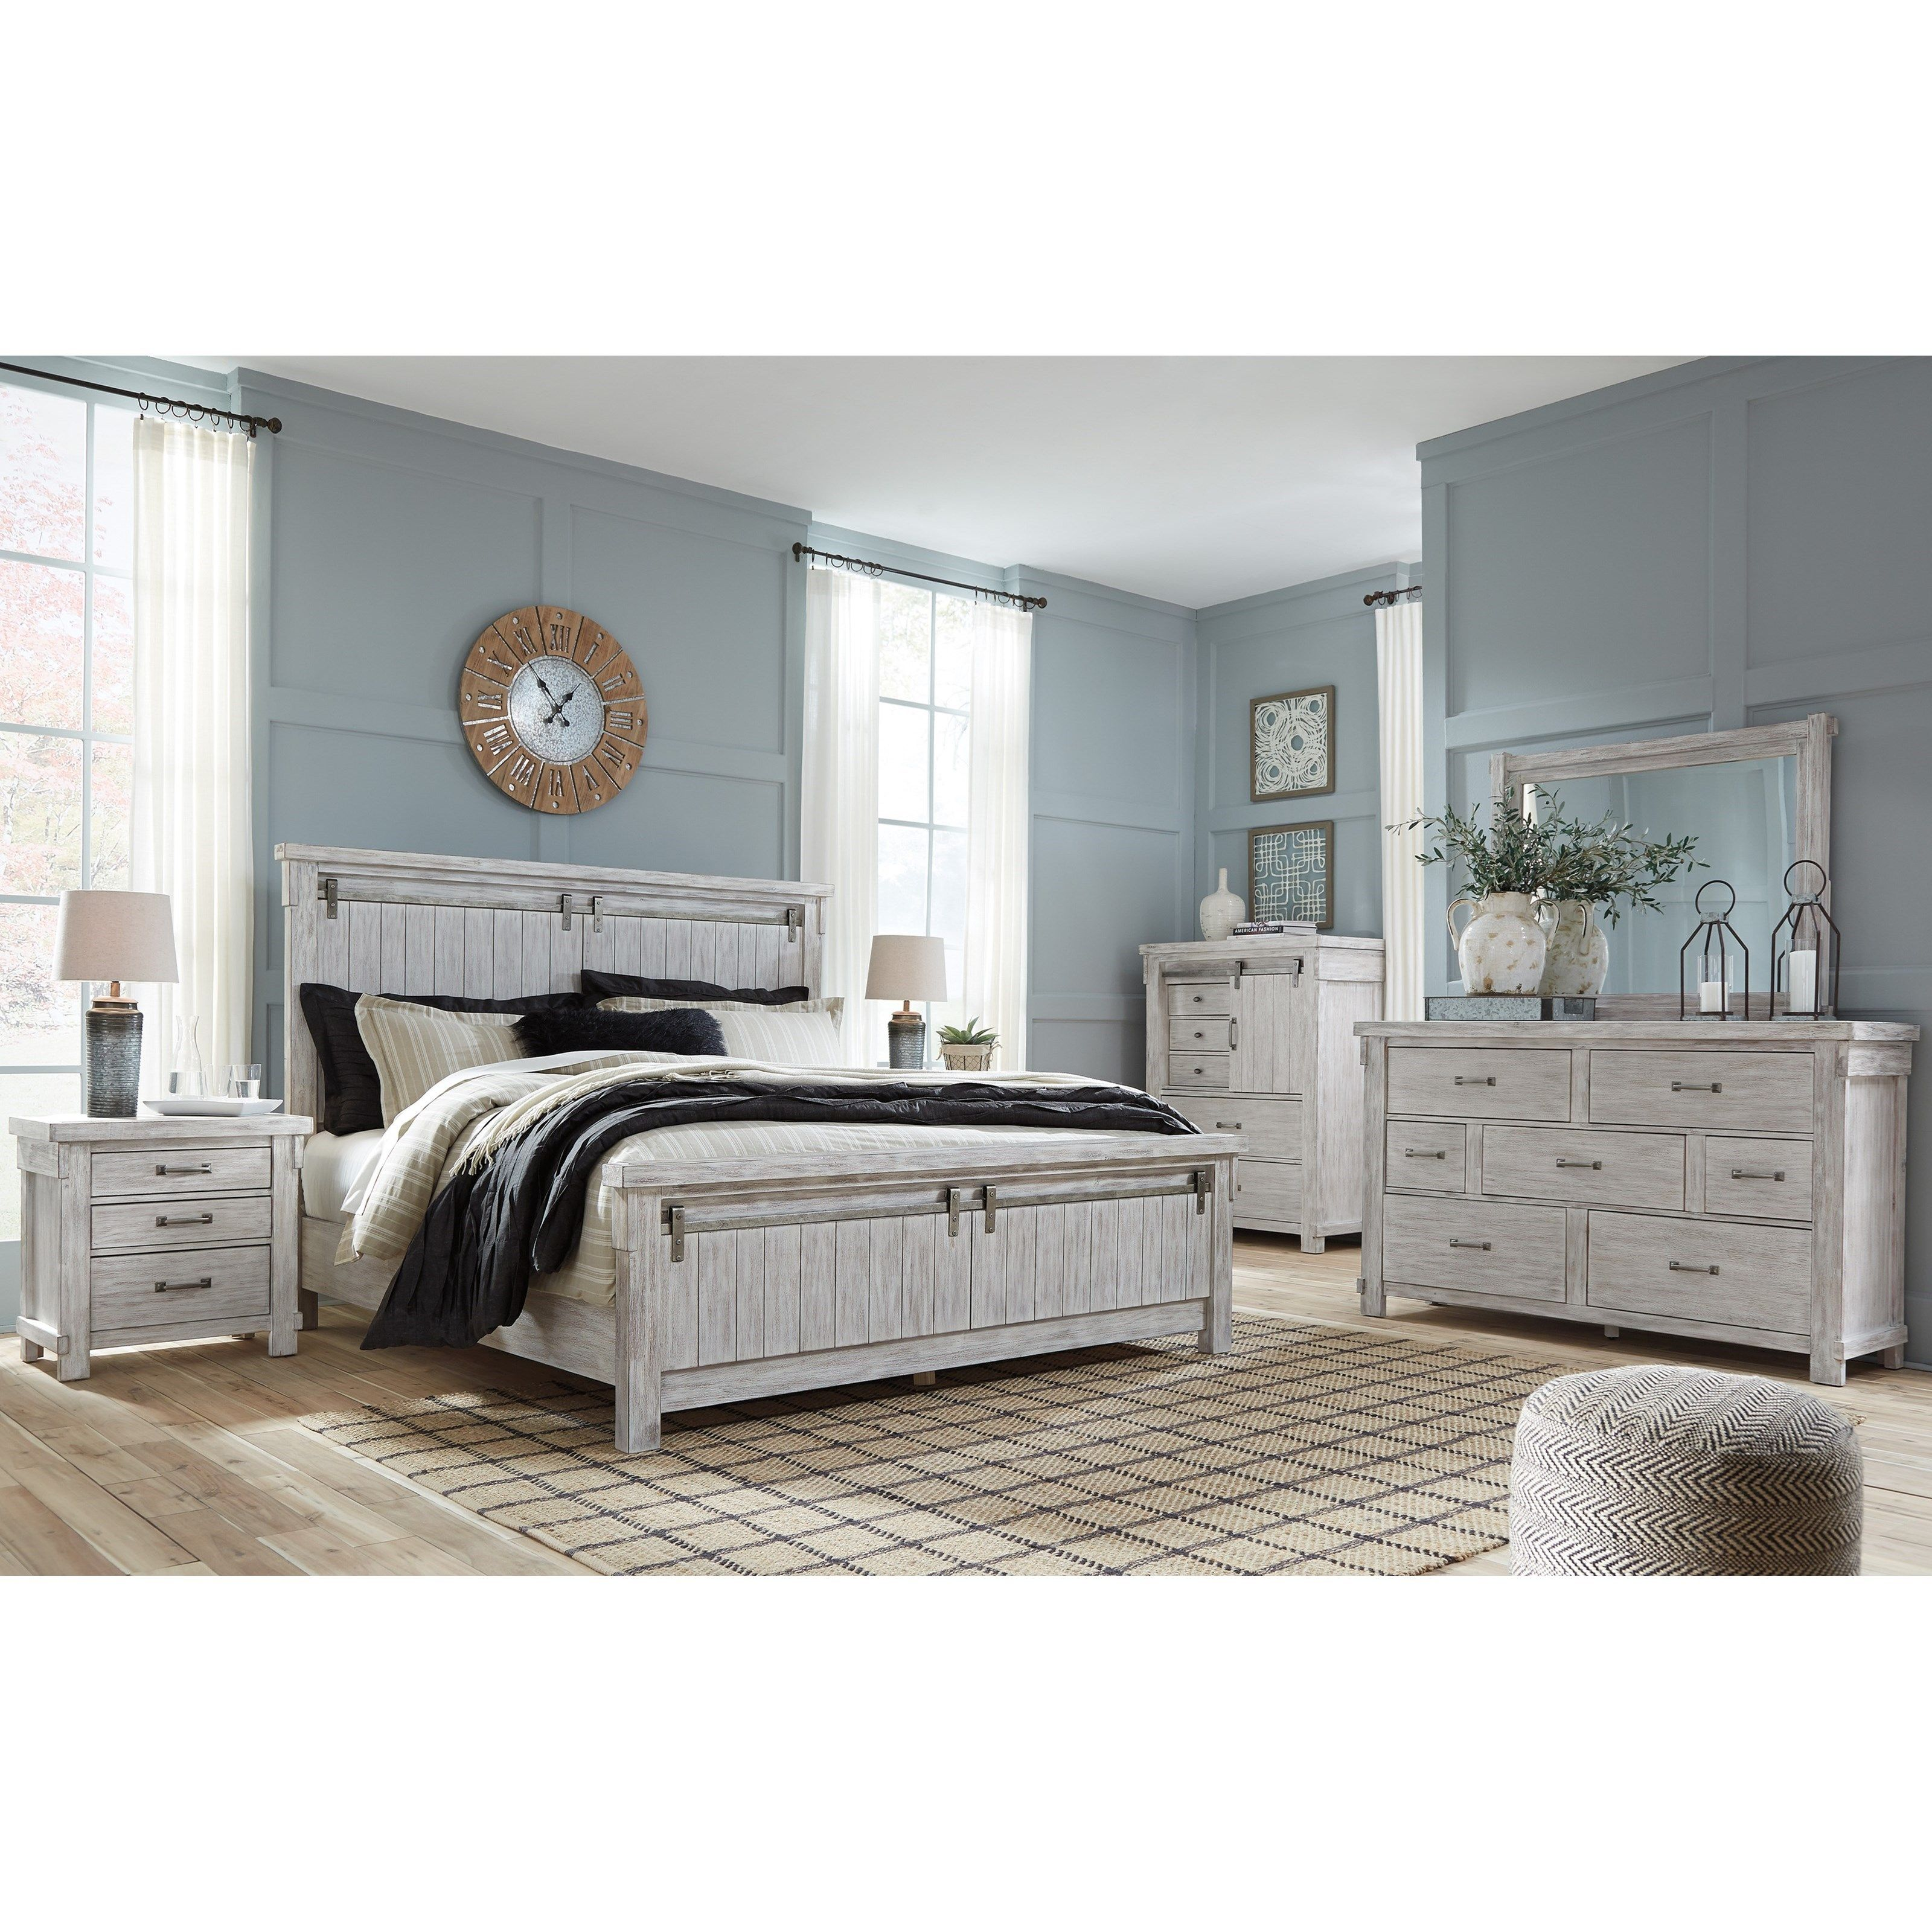 Brashland Queen Bedroom Group by Signature Design by